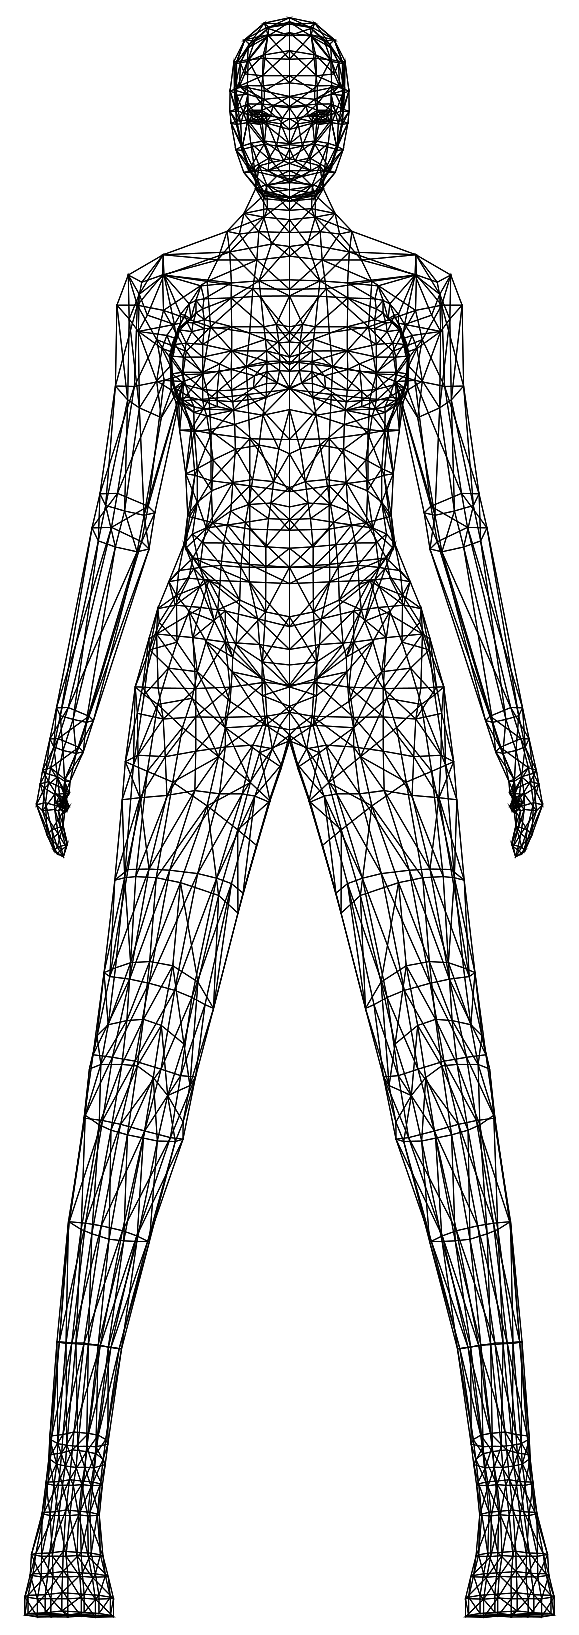 Modern Drawing Of Female Body Transparent Png Stickpng